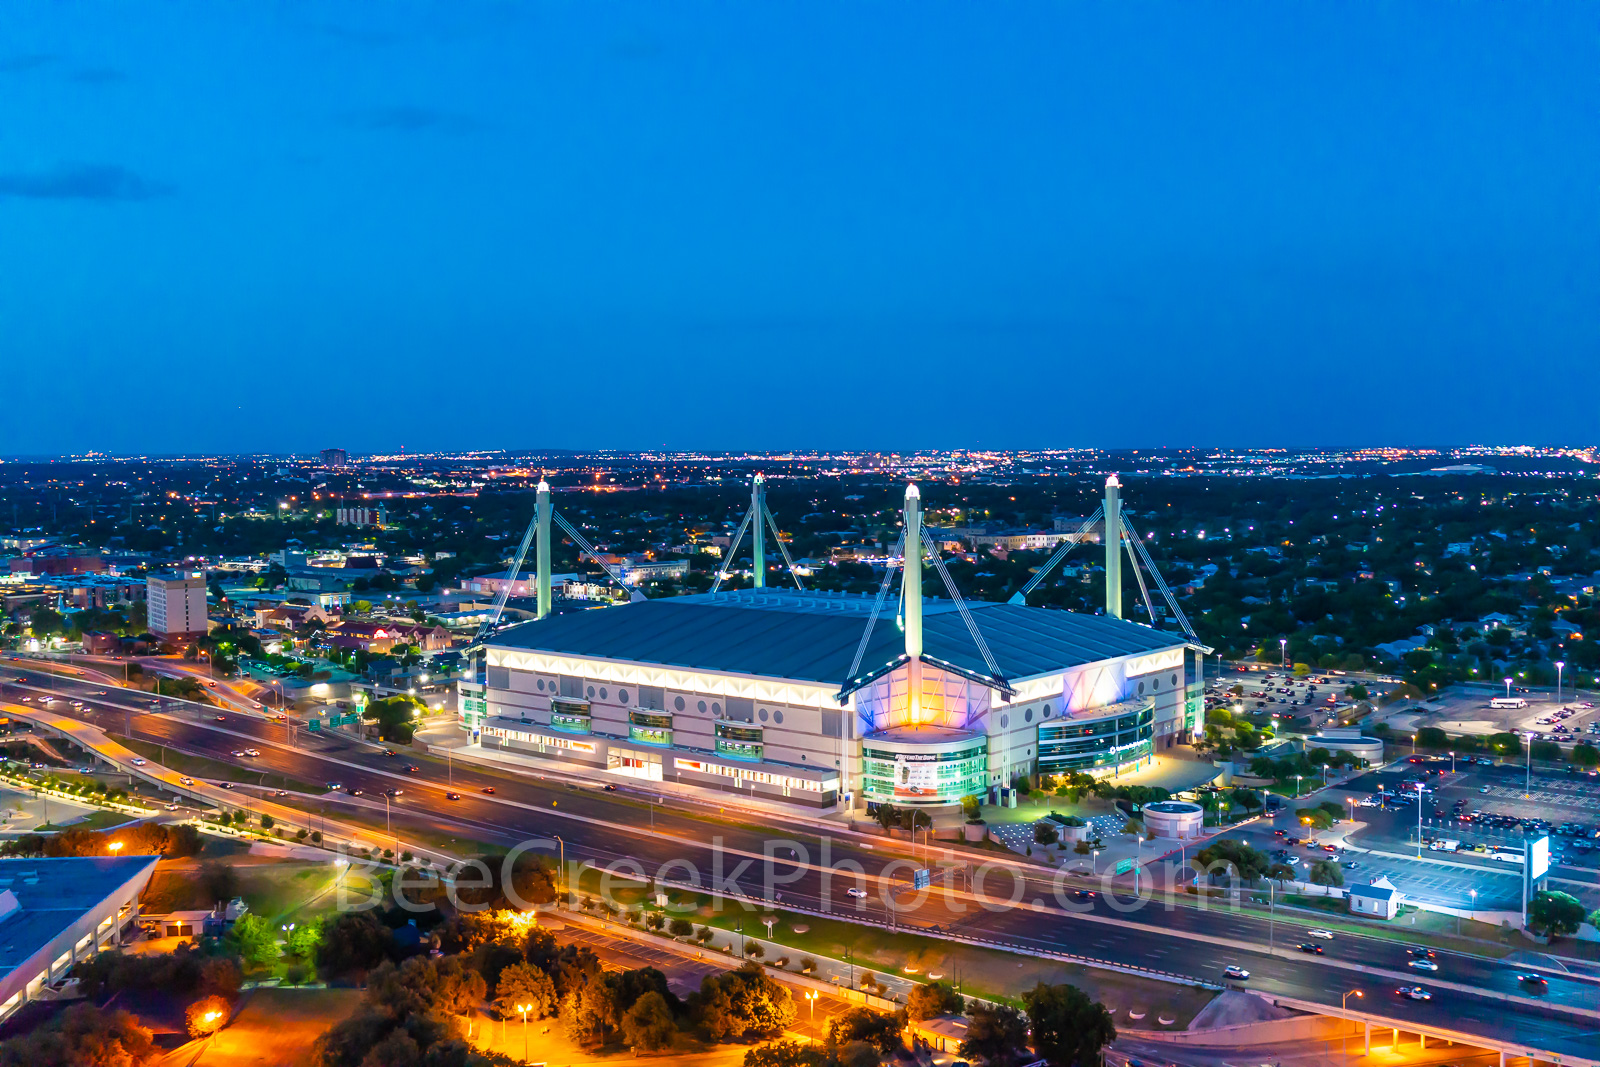 San Antonio Alamodome twilight, downtown, cityscape, cityscapes, sports, events, music, convention center, highway, Henry B Gonzales, Hemisphere park, Texas sports, UTSA Roadrunners, prints, canvas, m, photo